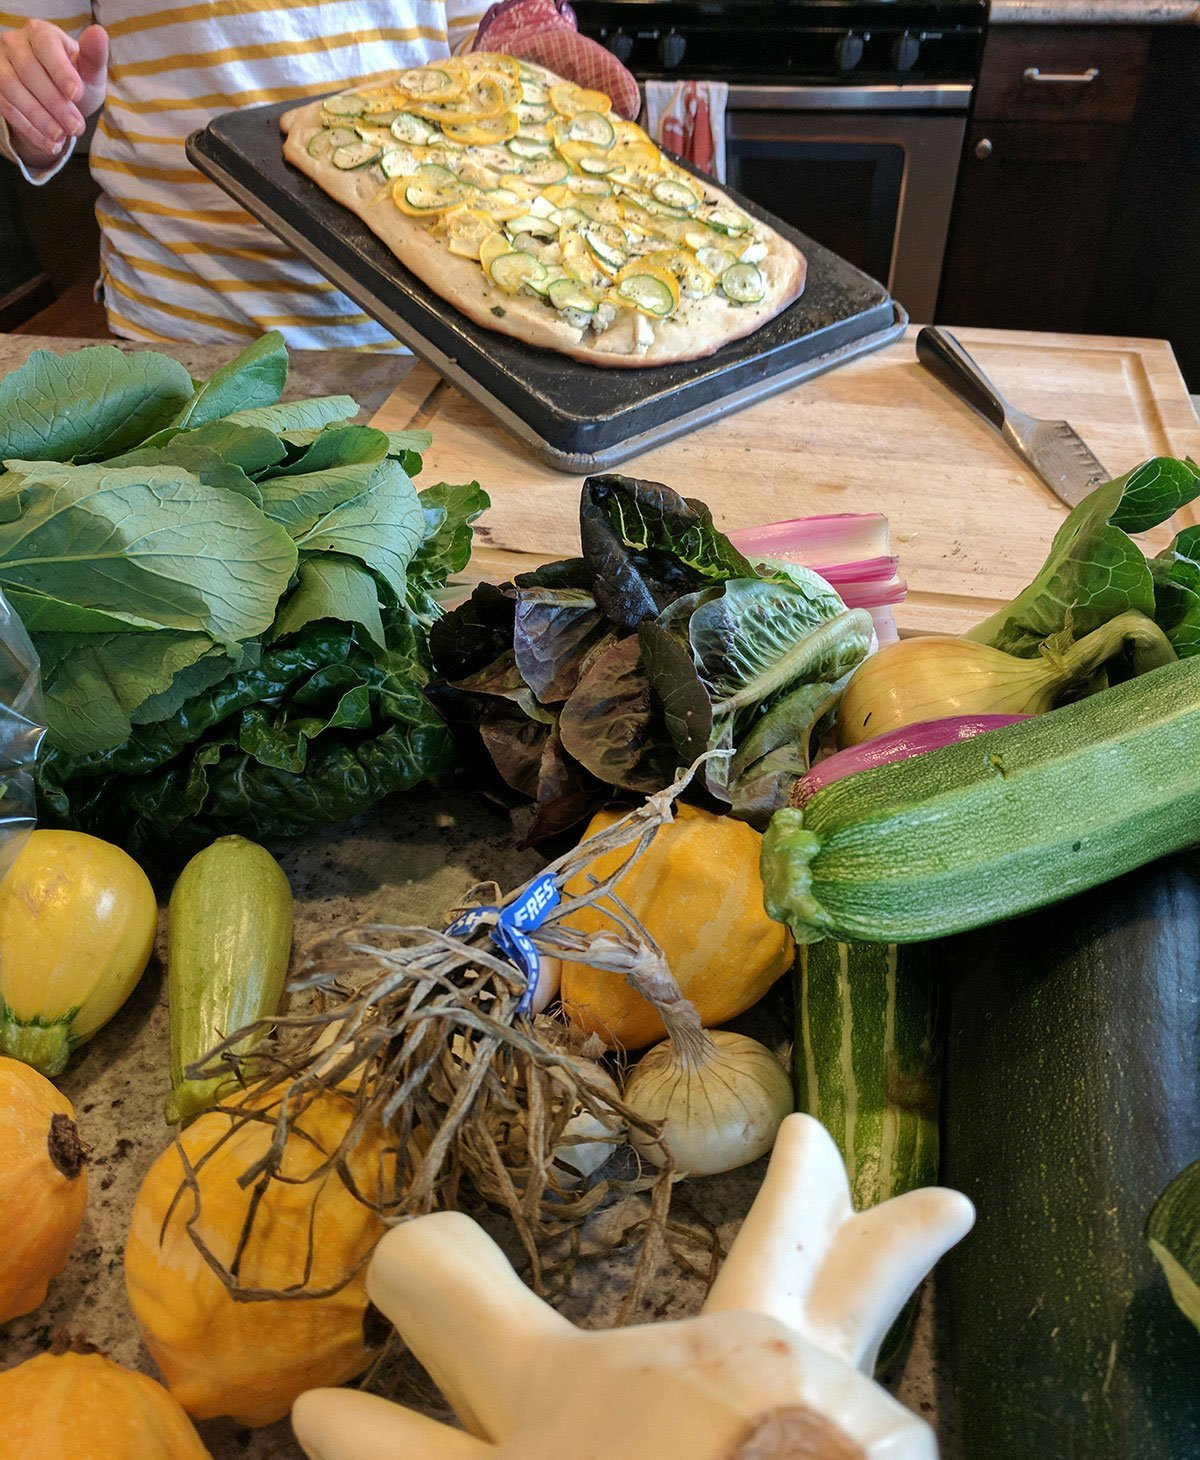 As a lifeline gardener trapped in urban seattle and travel destinations, seeing the bounty of a late summer home garden produce does my heart good.